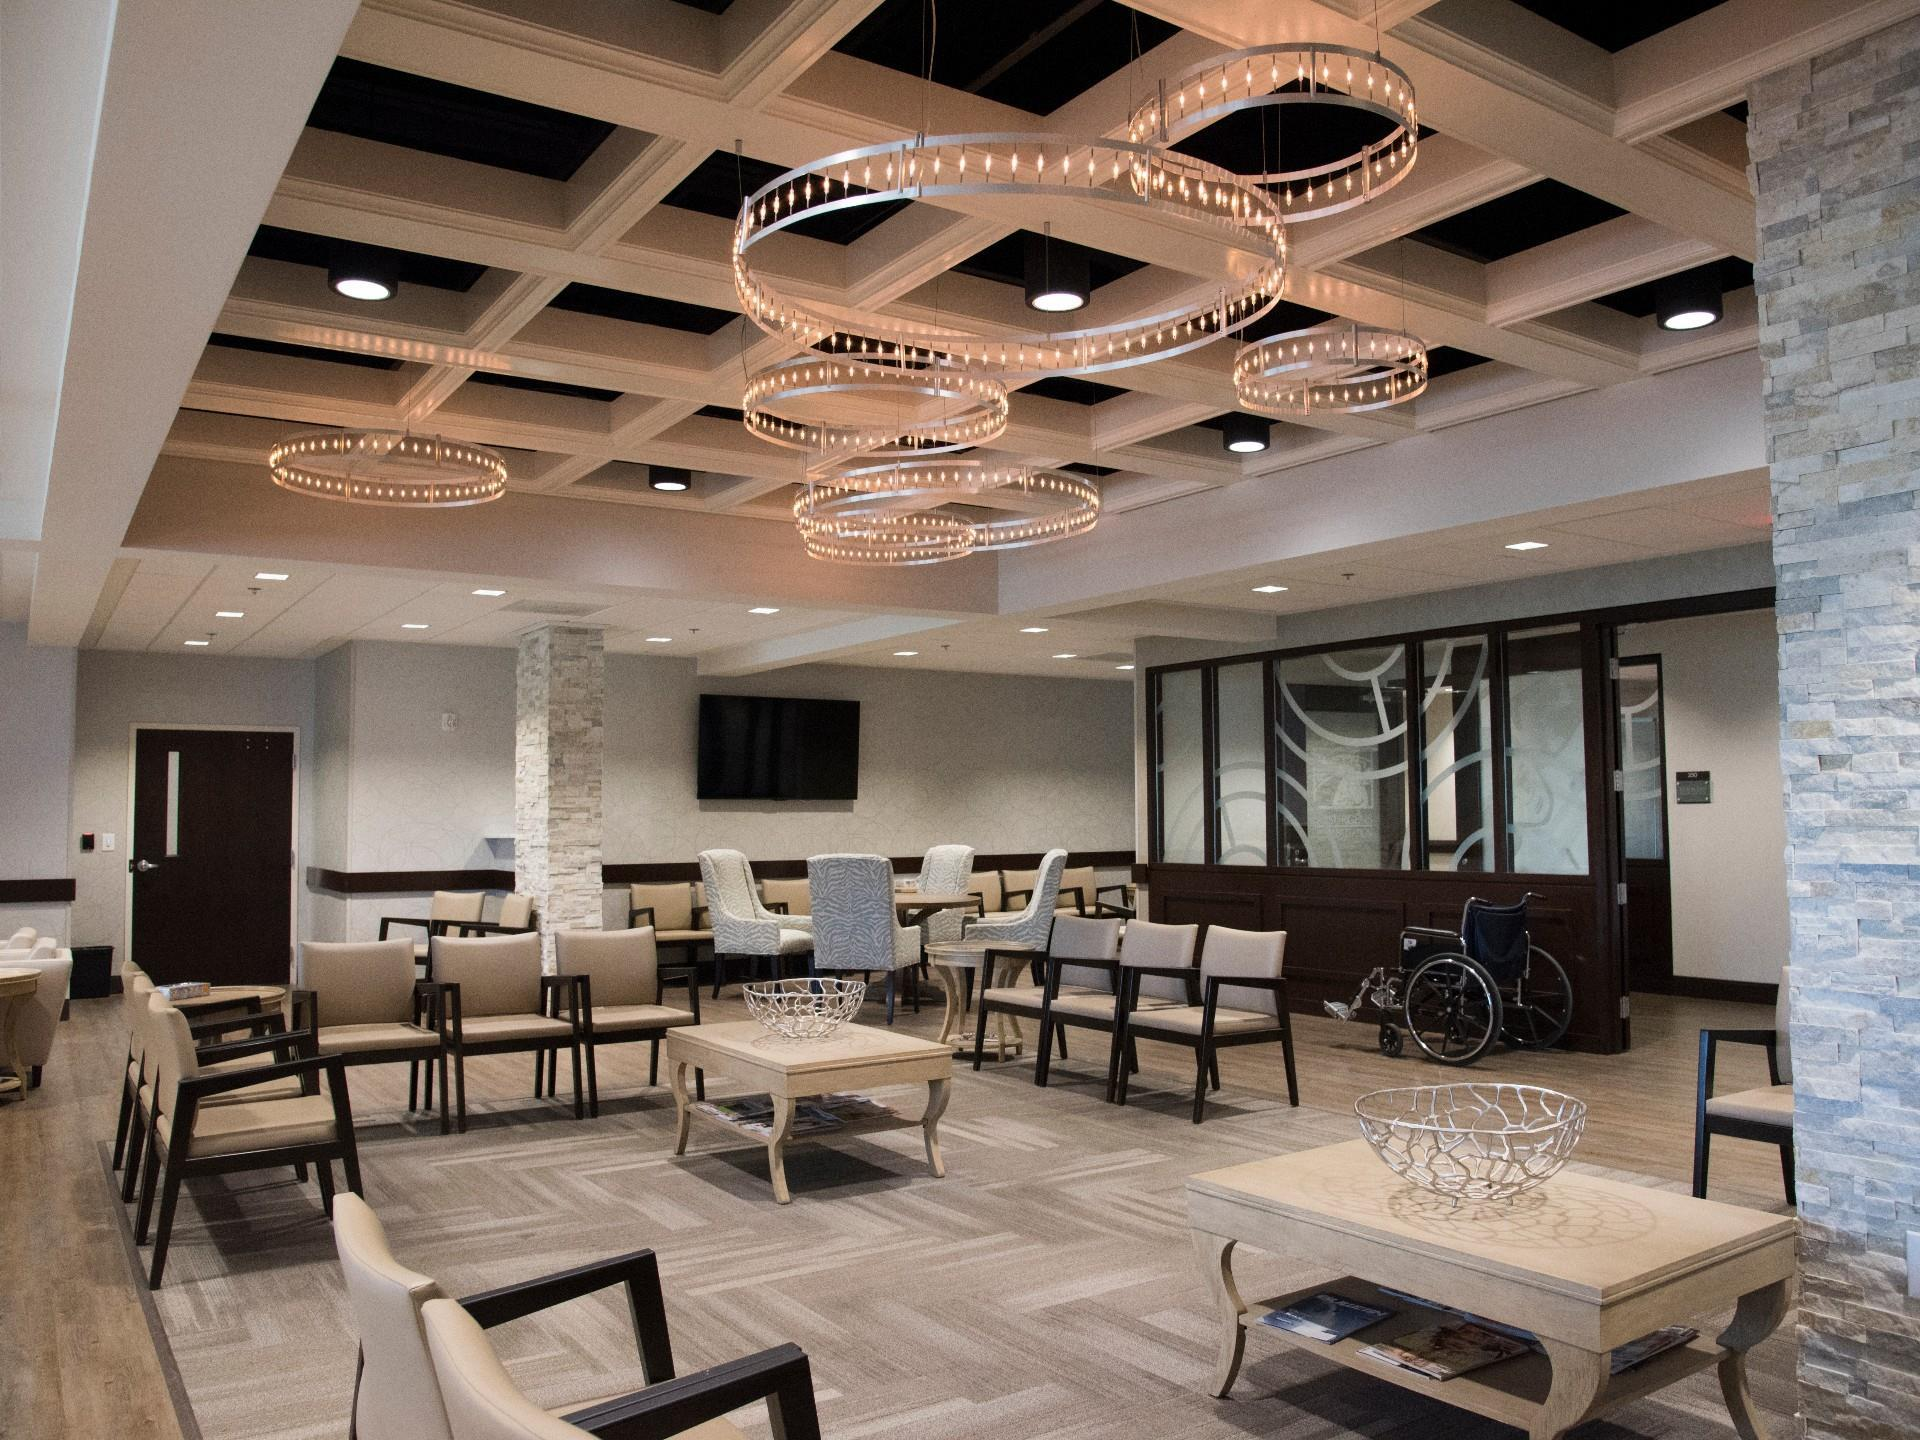 open lobby with decorative chandeliers from ceiling and tables with chairs waiting area